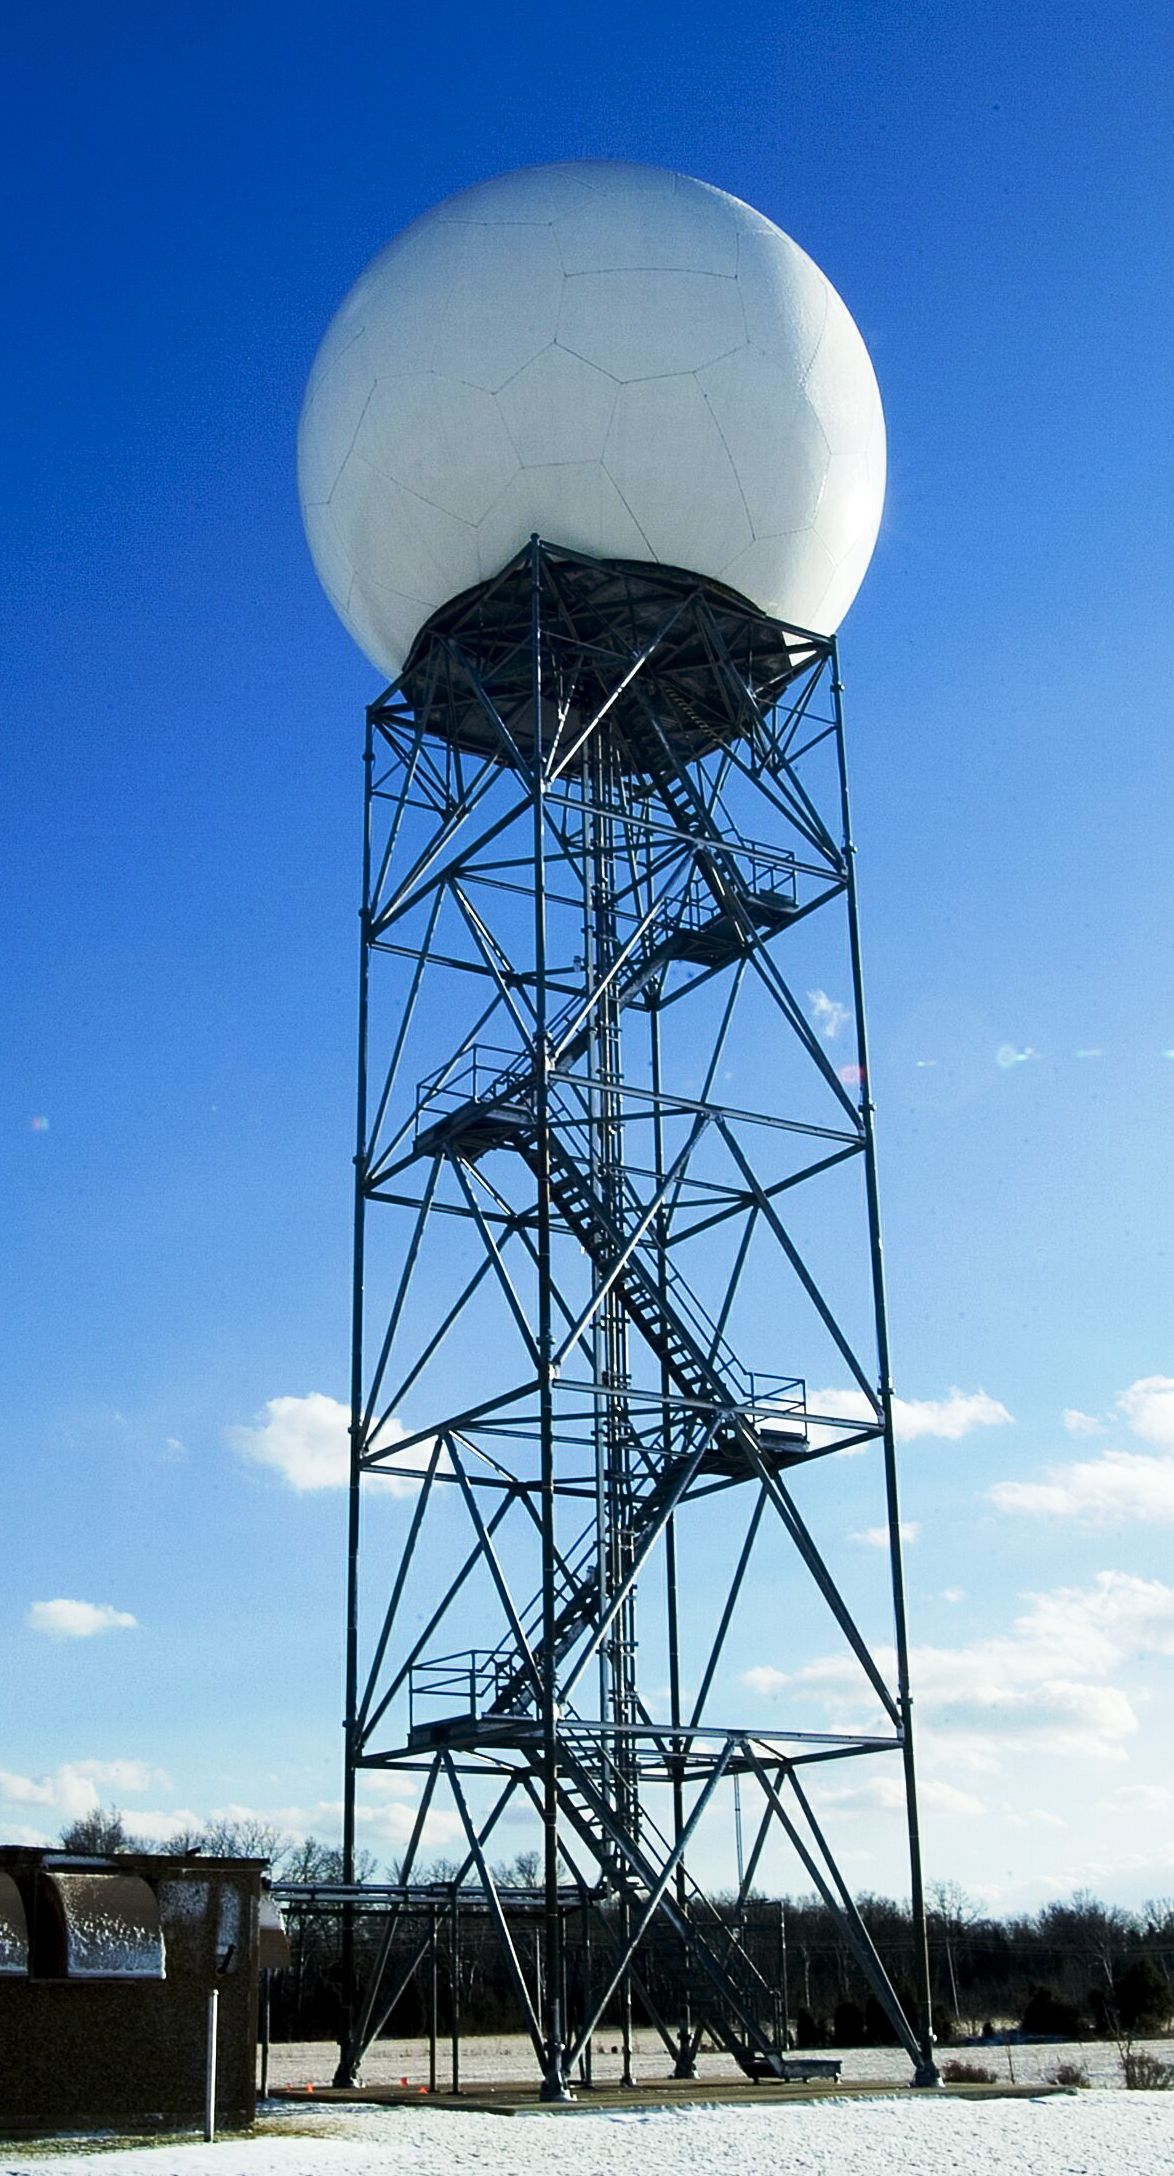 our local doppler radar upgrades to dual